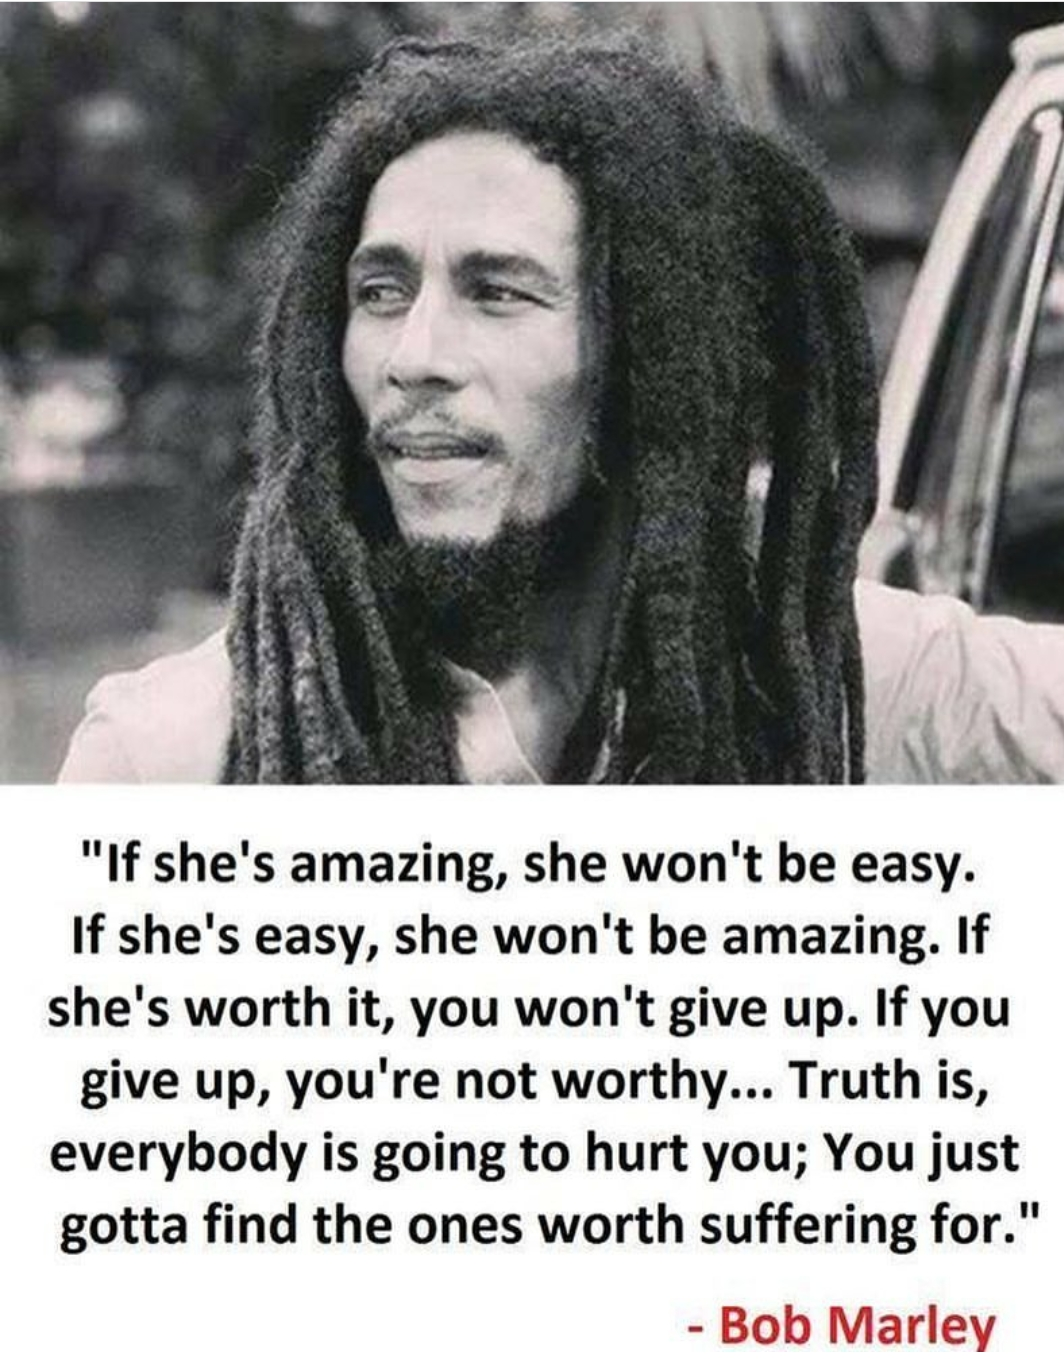 [Image] Wise words from Bob Marley